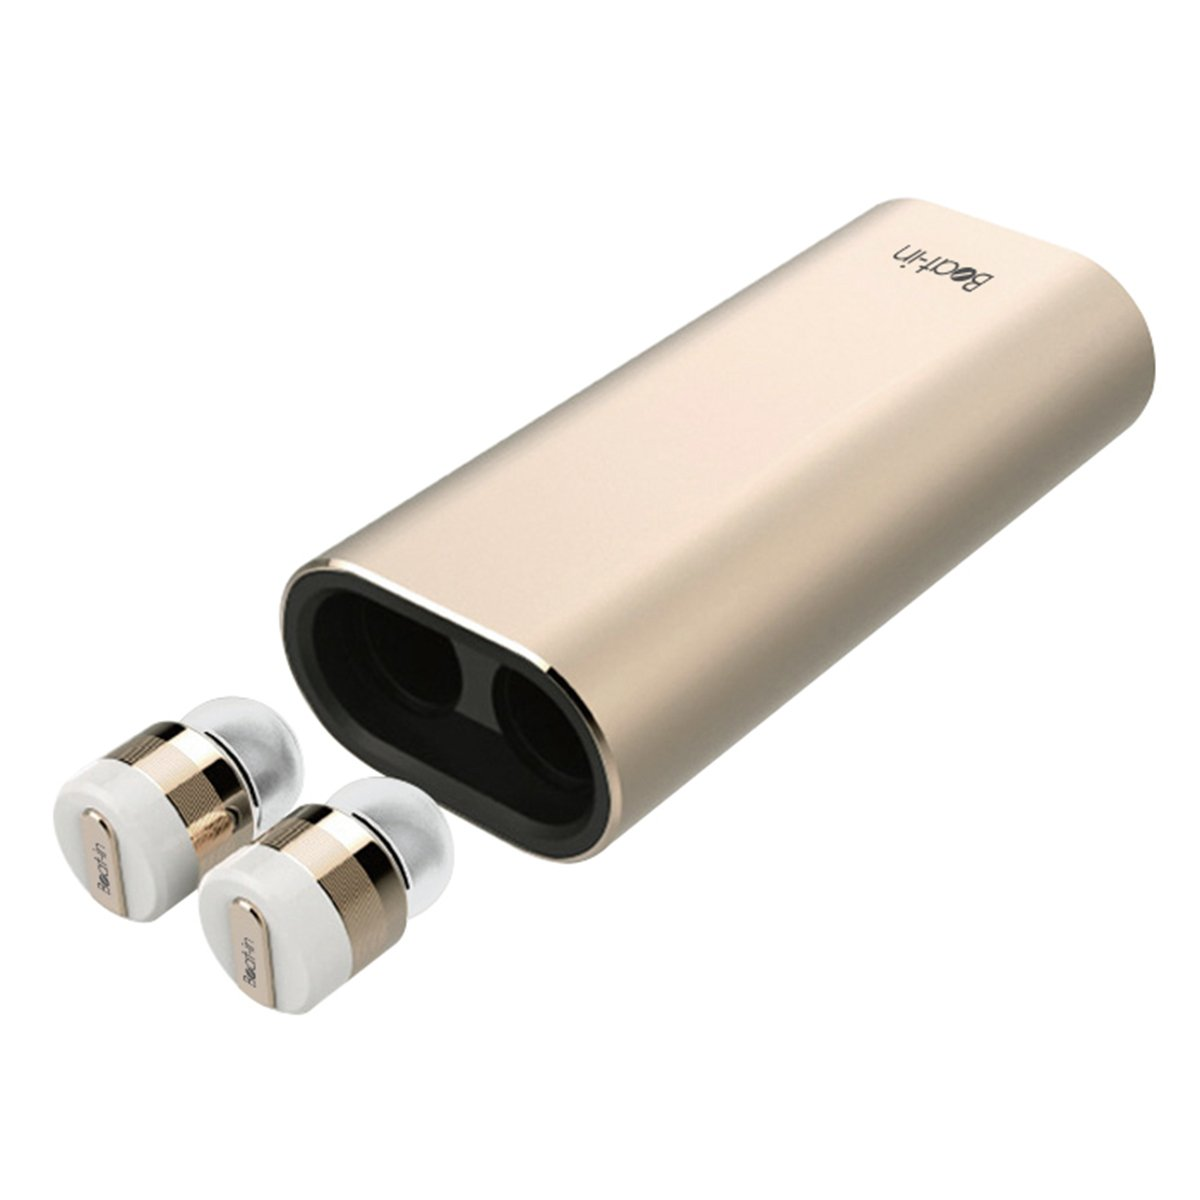 Beat-in Wireless Earphone Power Bank Bluetooth 4.1 compatible Left and right complete independent type BI9315 (Gold)